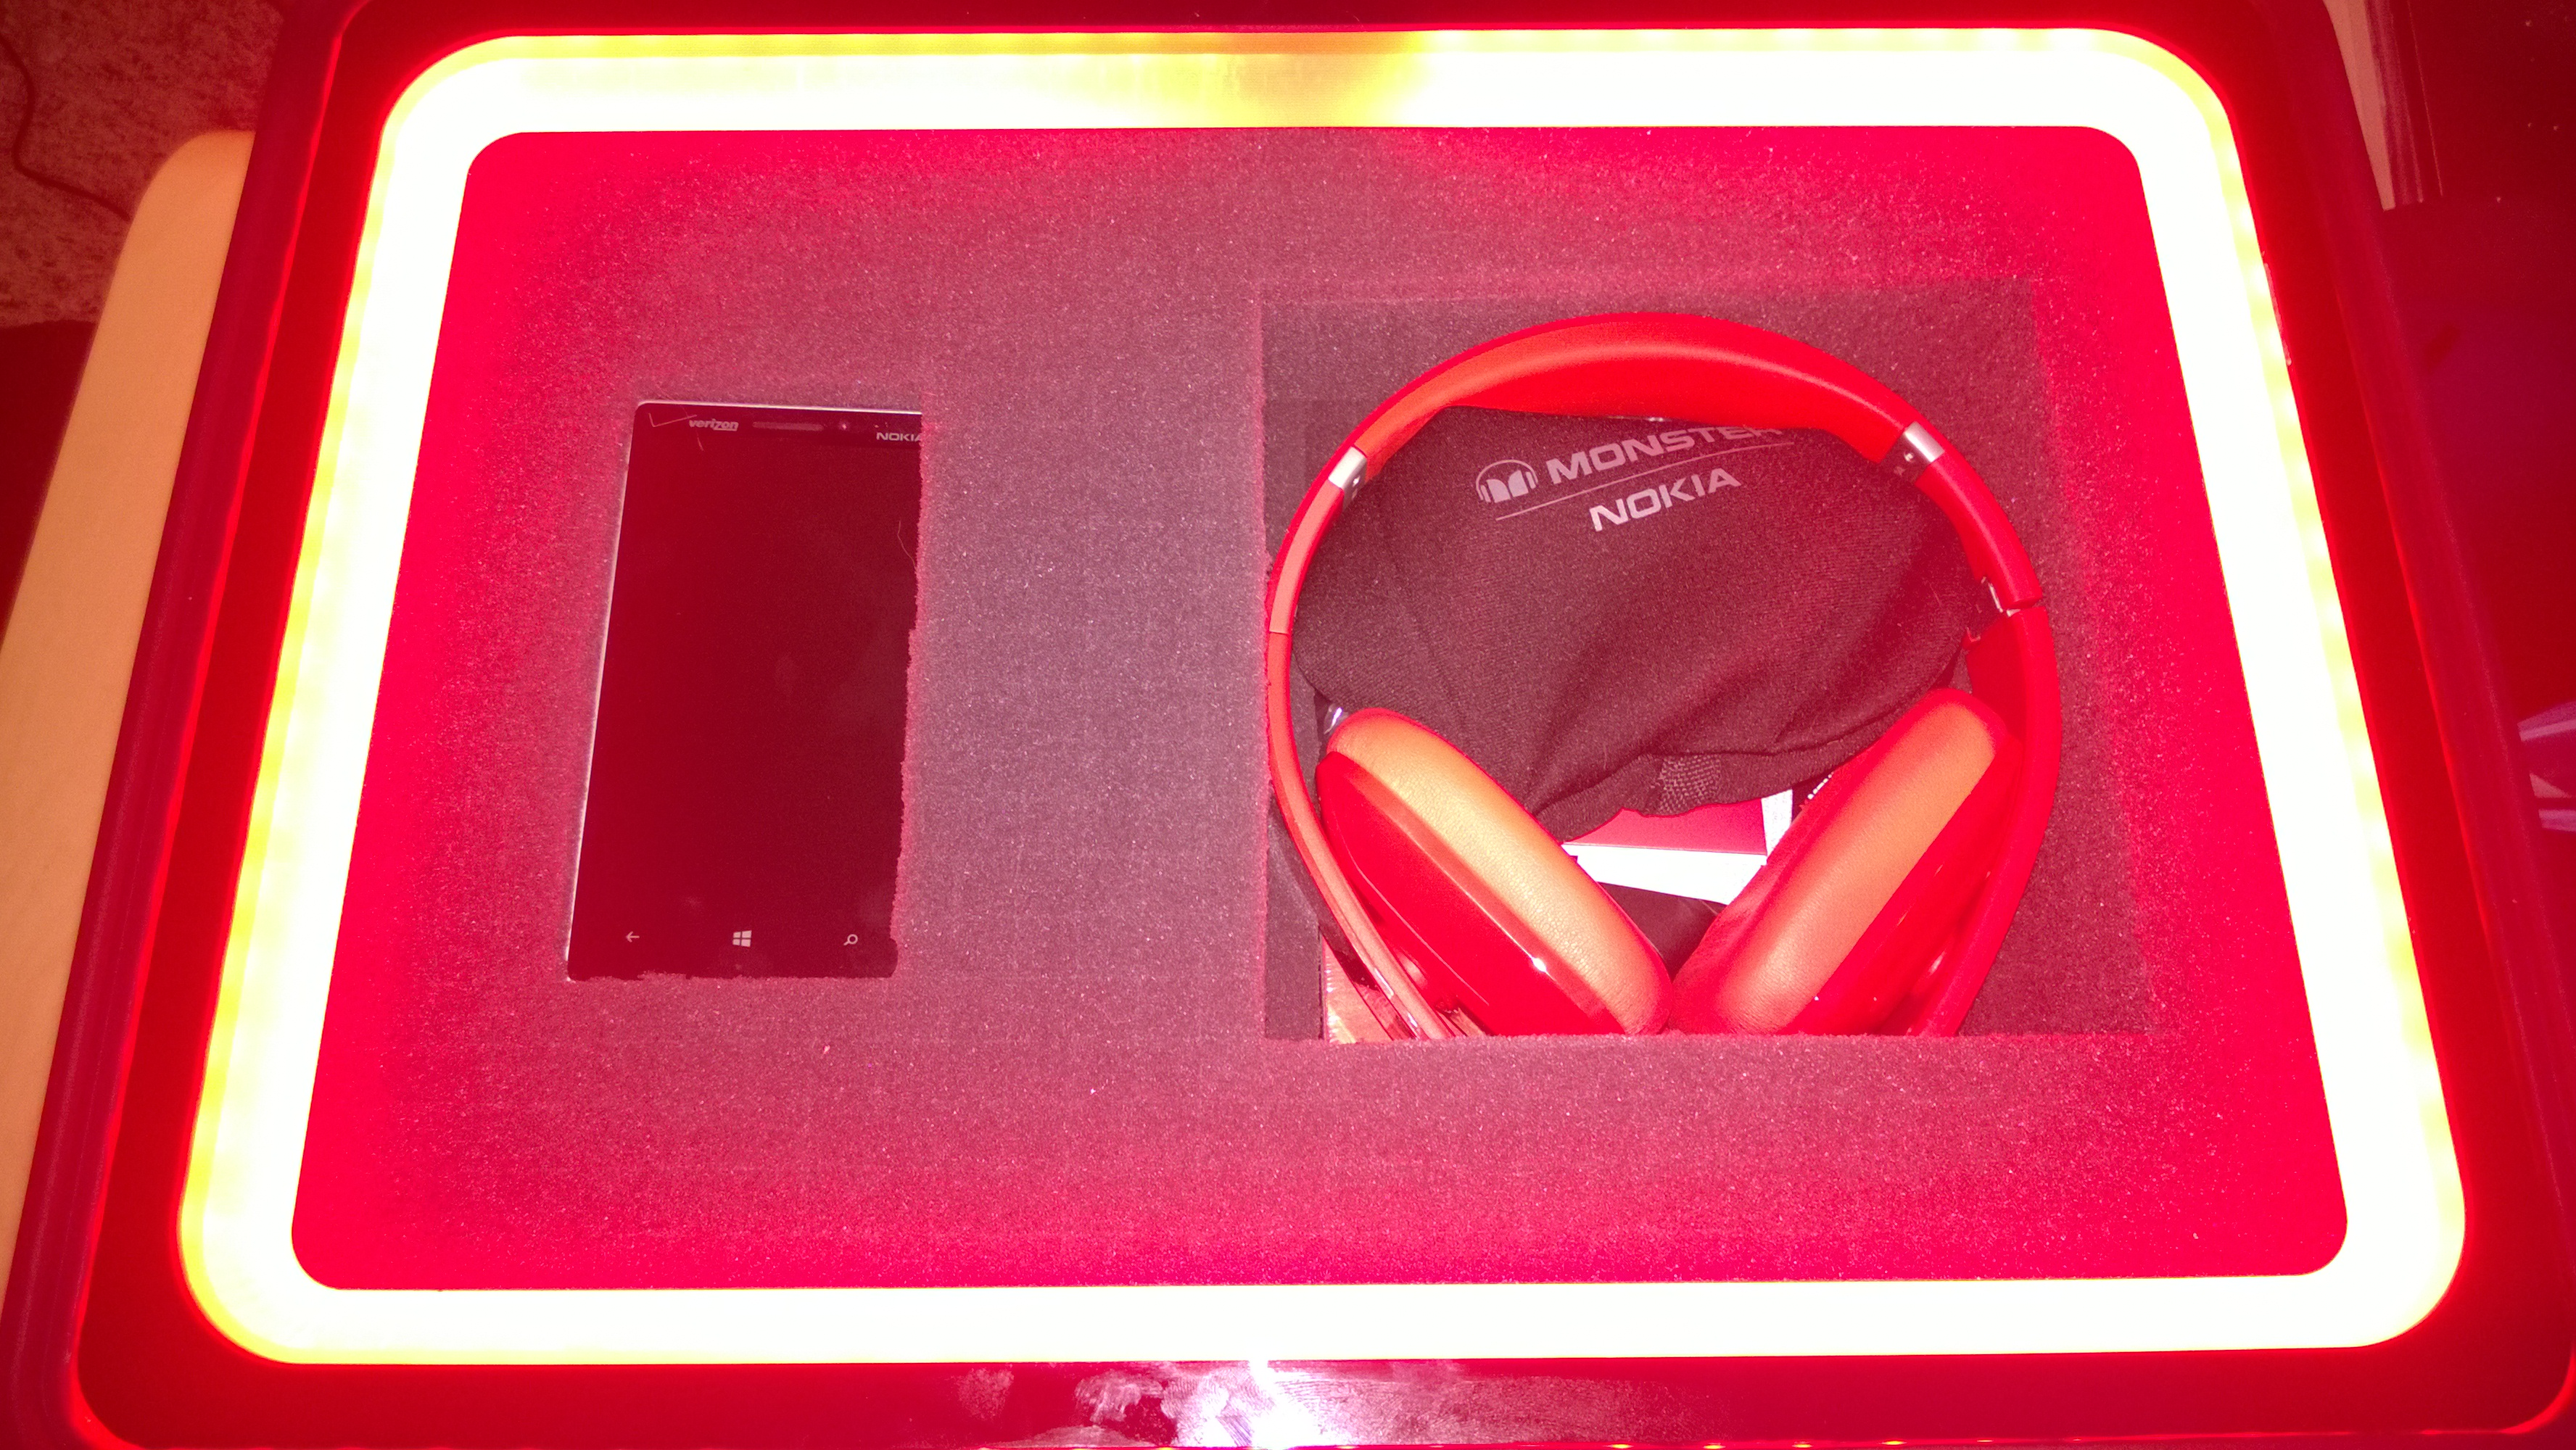 All is revealed: the phone on the left and the headphones on the right.